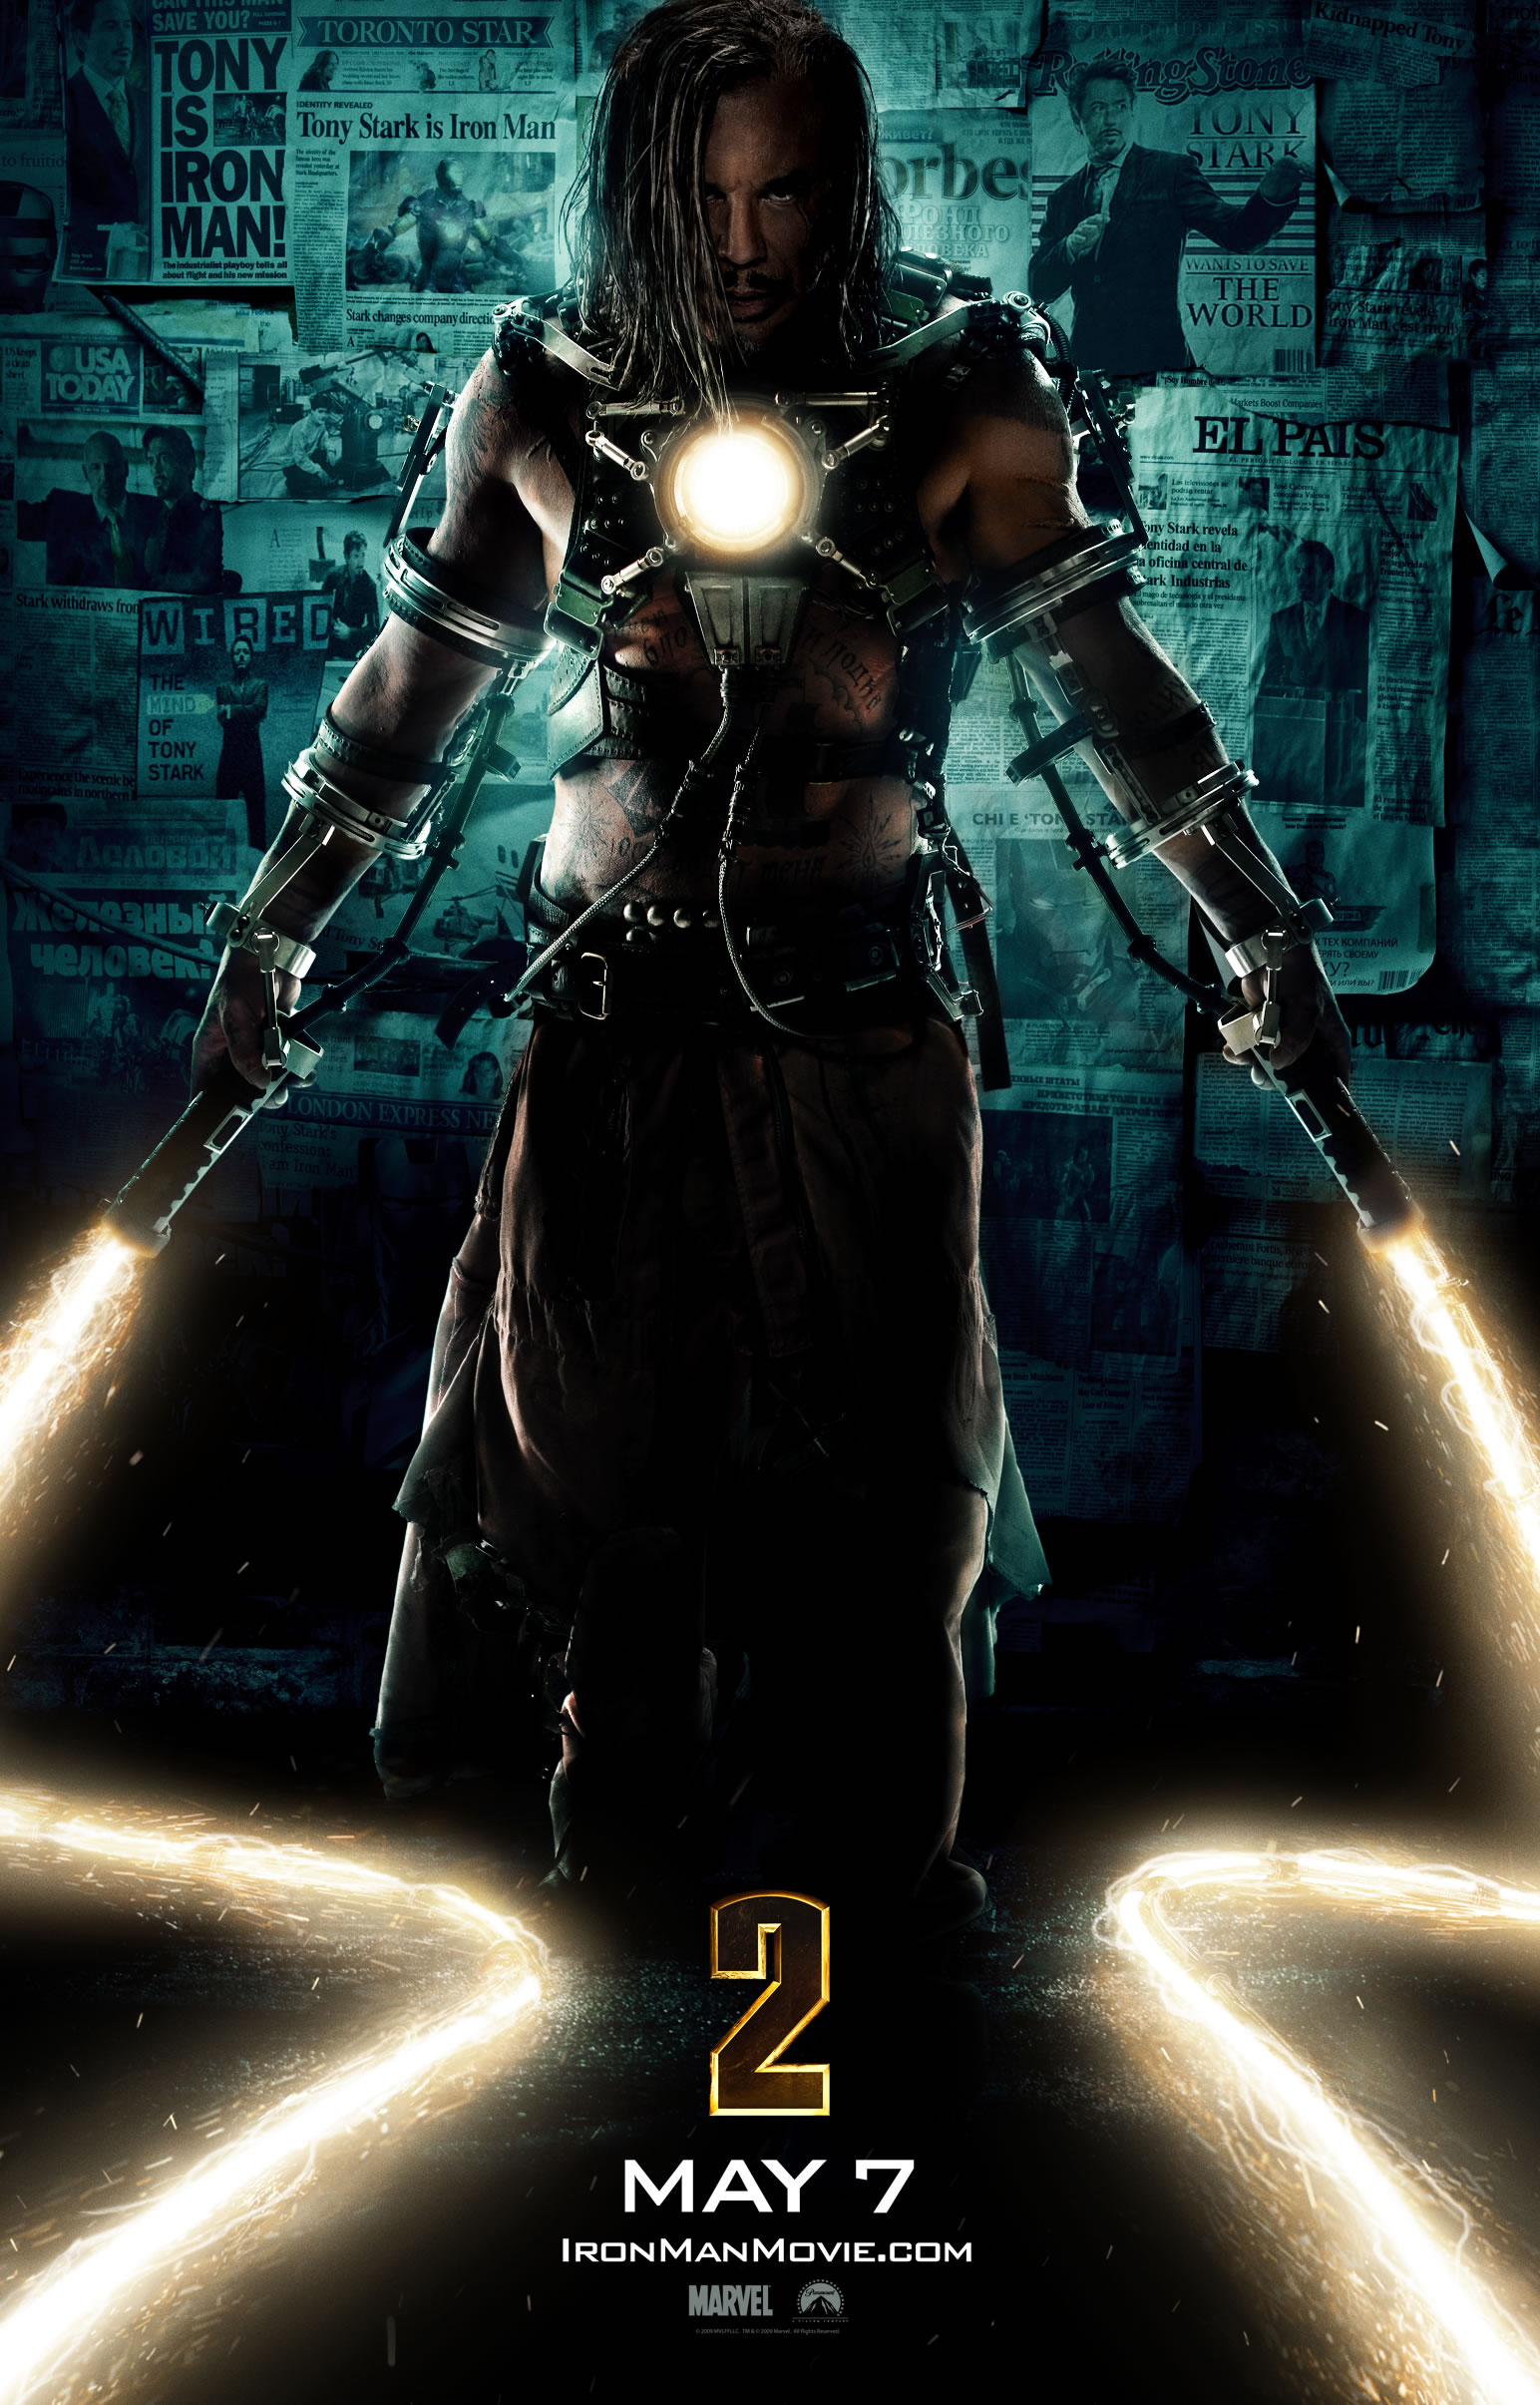 Wallpaper Affiche Iron Man 2 Ivan Vanko Iron Man